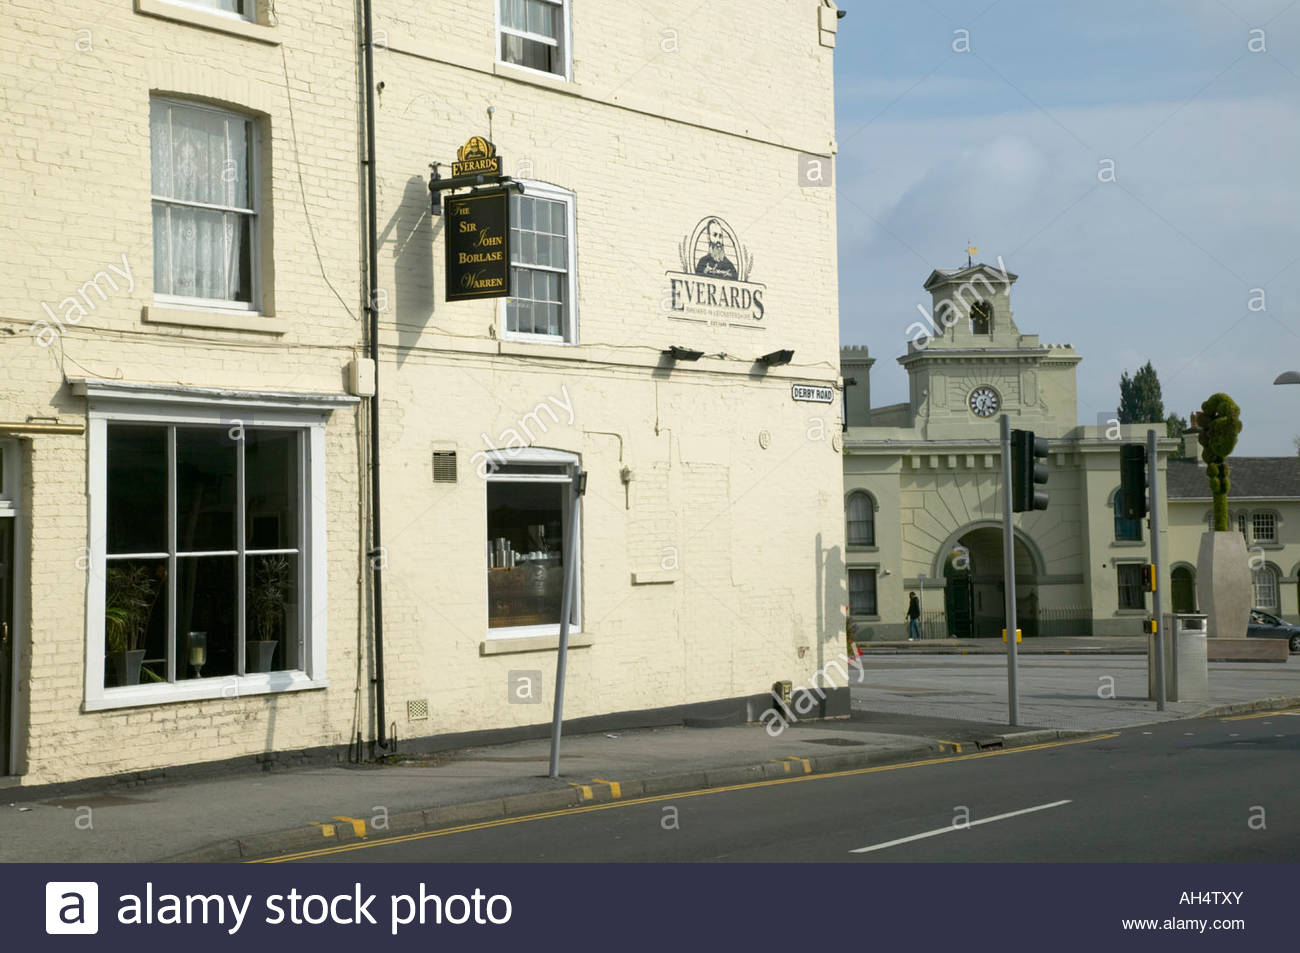 St John Borlase Warren public house Canning Terrace Alms Houses Canning Circus Nottingham - Stock Image